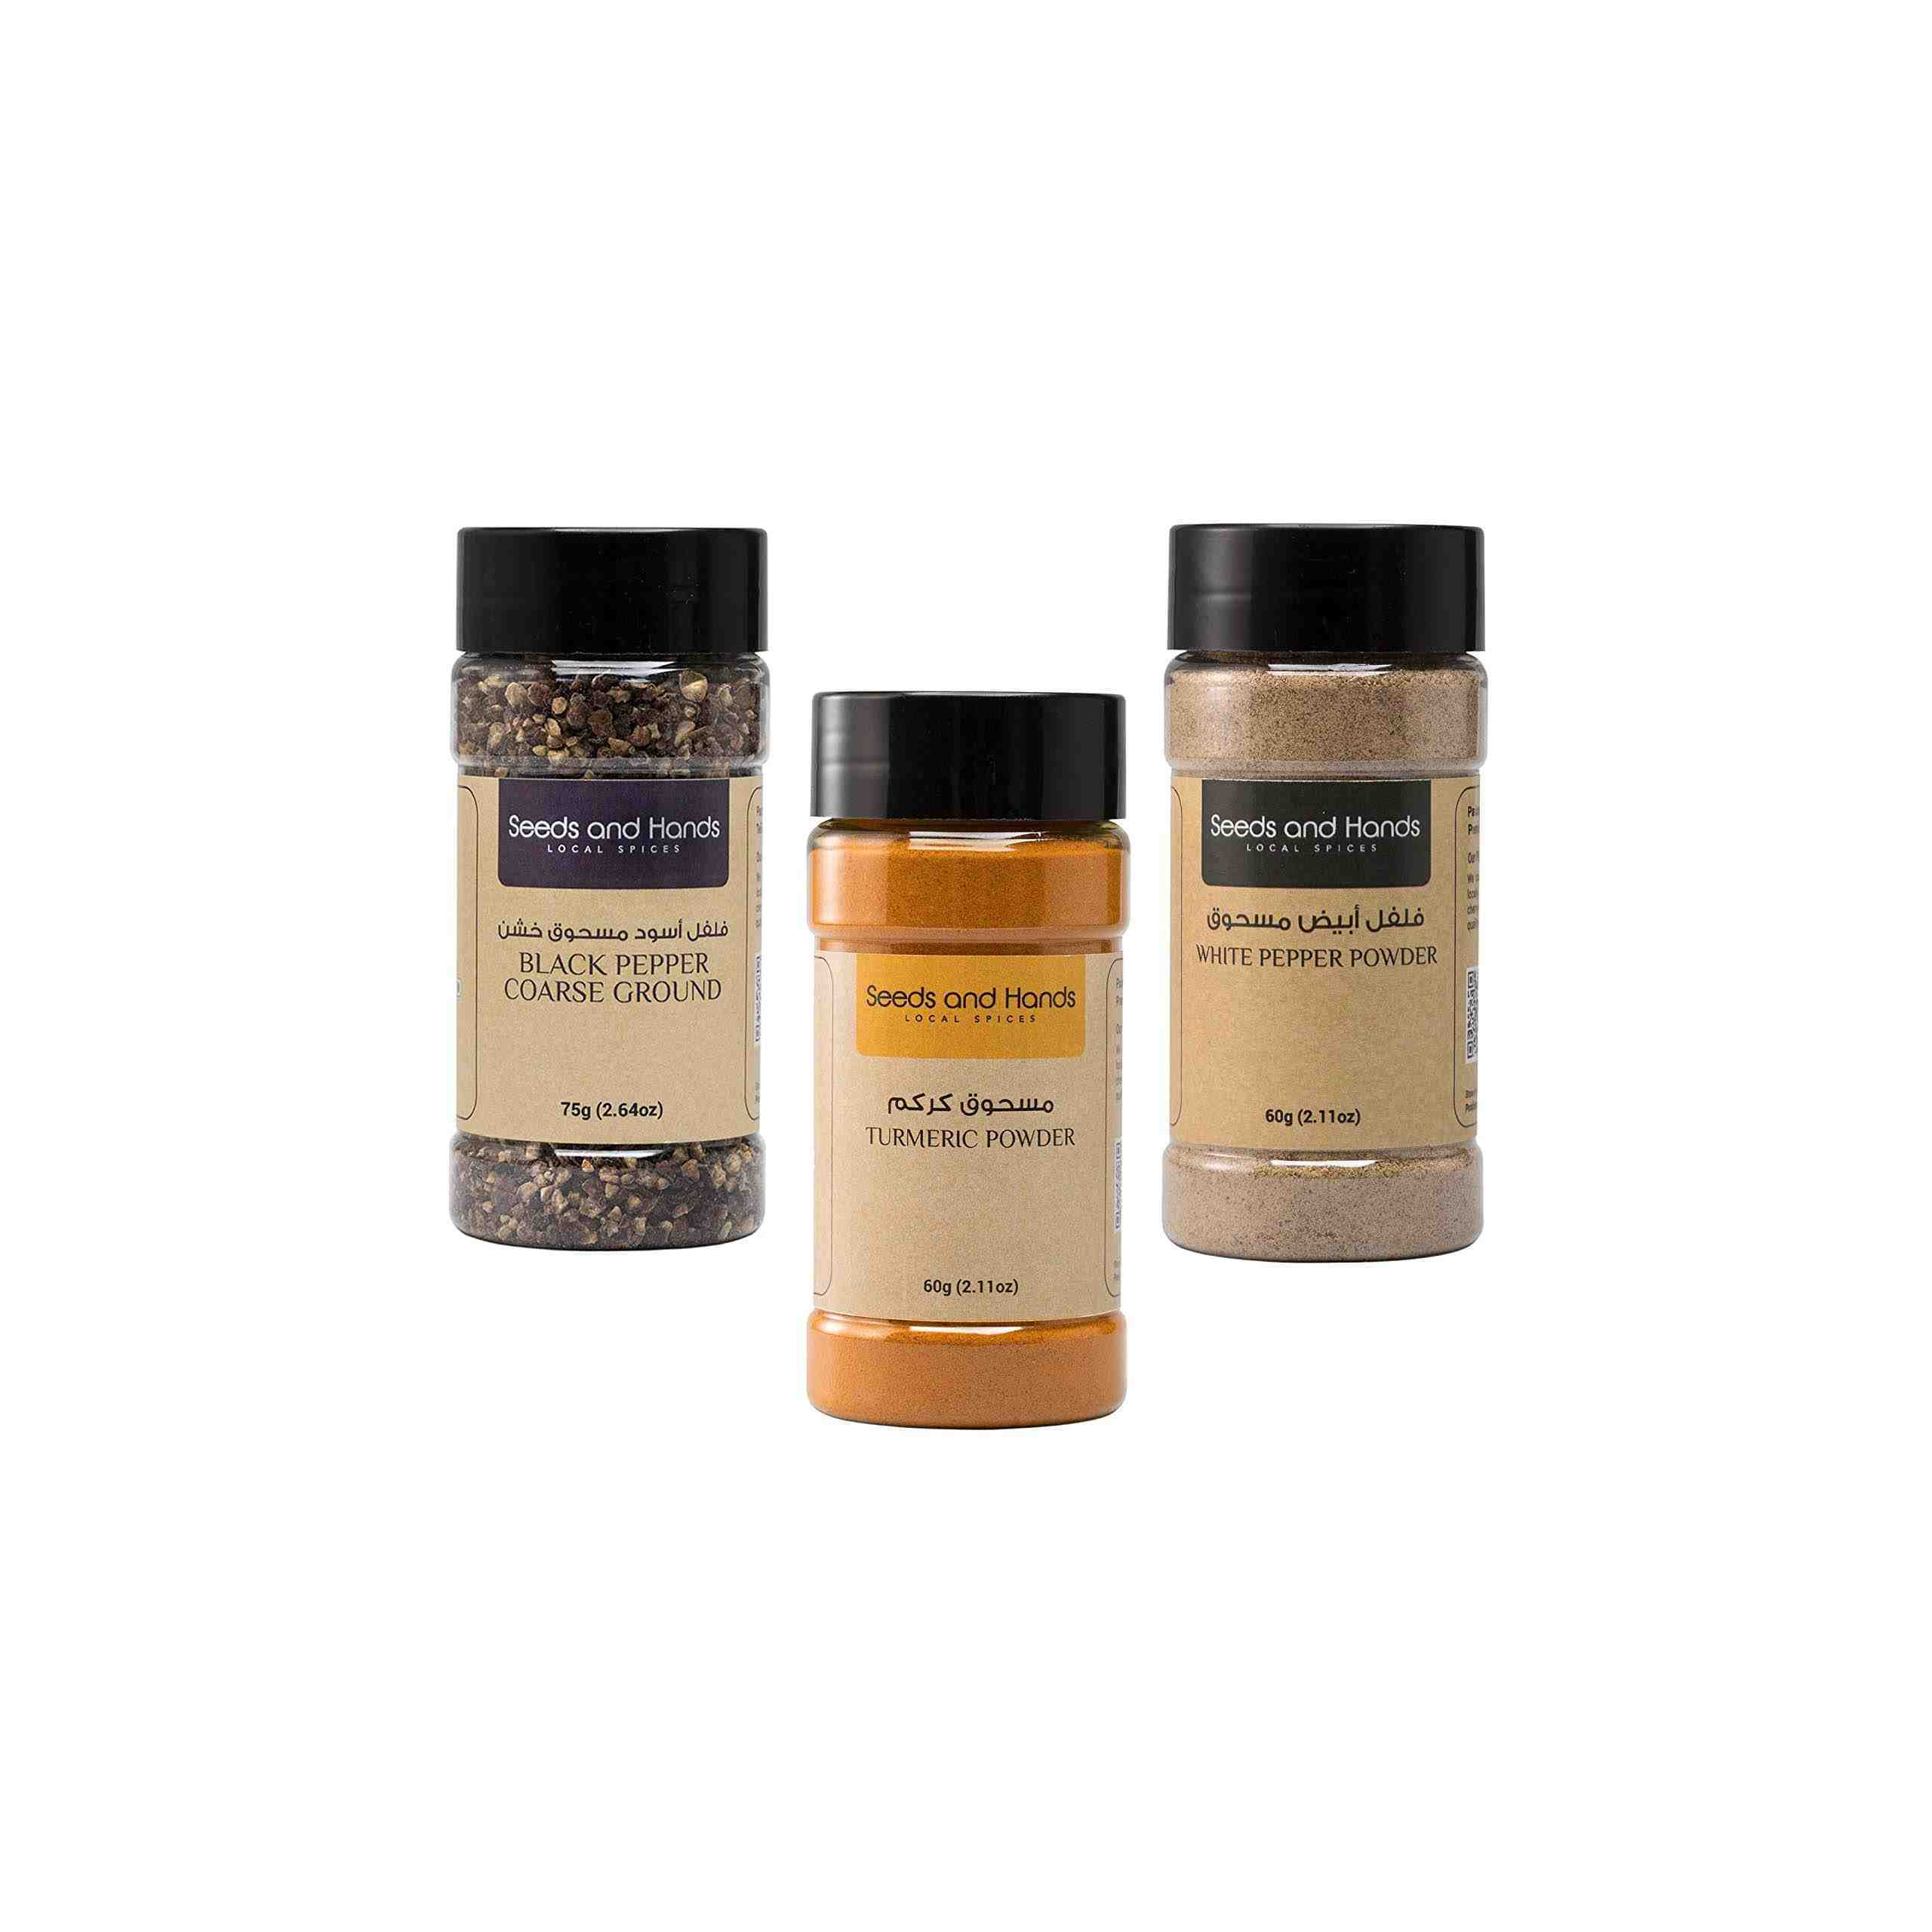 Seeds and Hands Spices Combo Pack (Black Pepper Coarse Ground 75g, Turmeric Powder 60g, White Pepper Powder 60g)